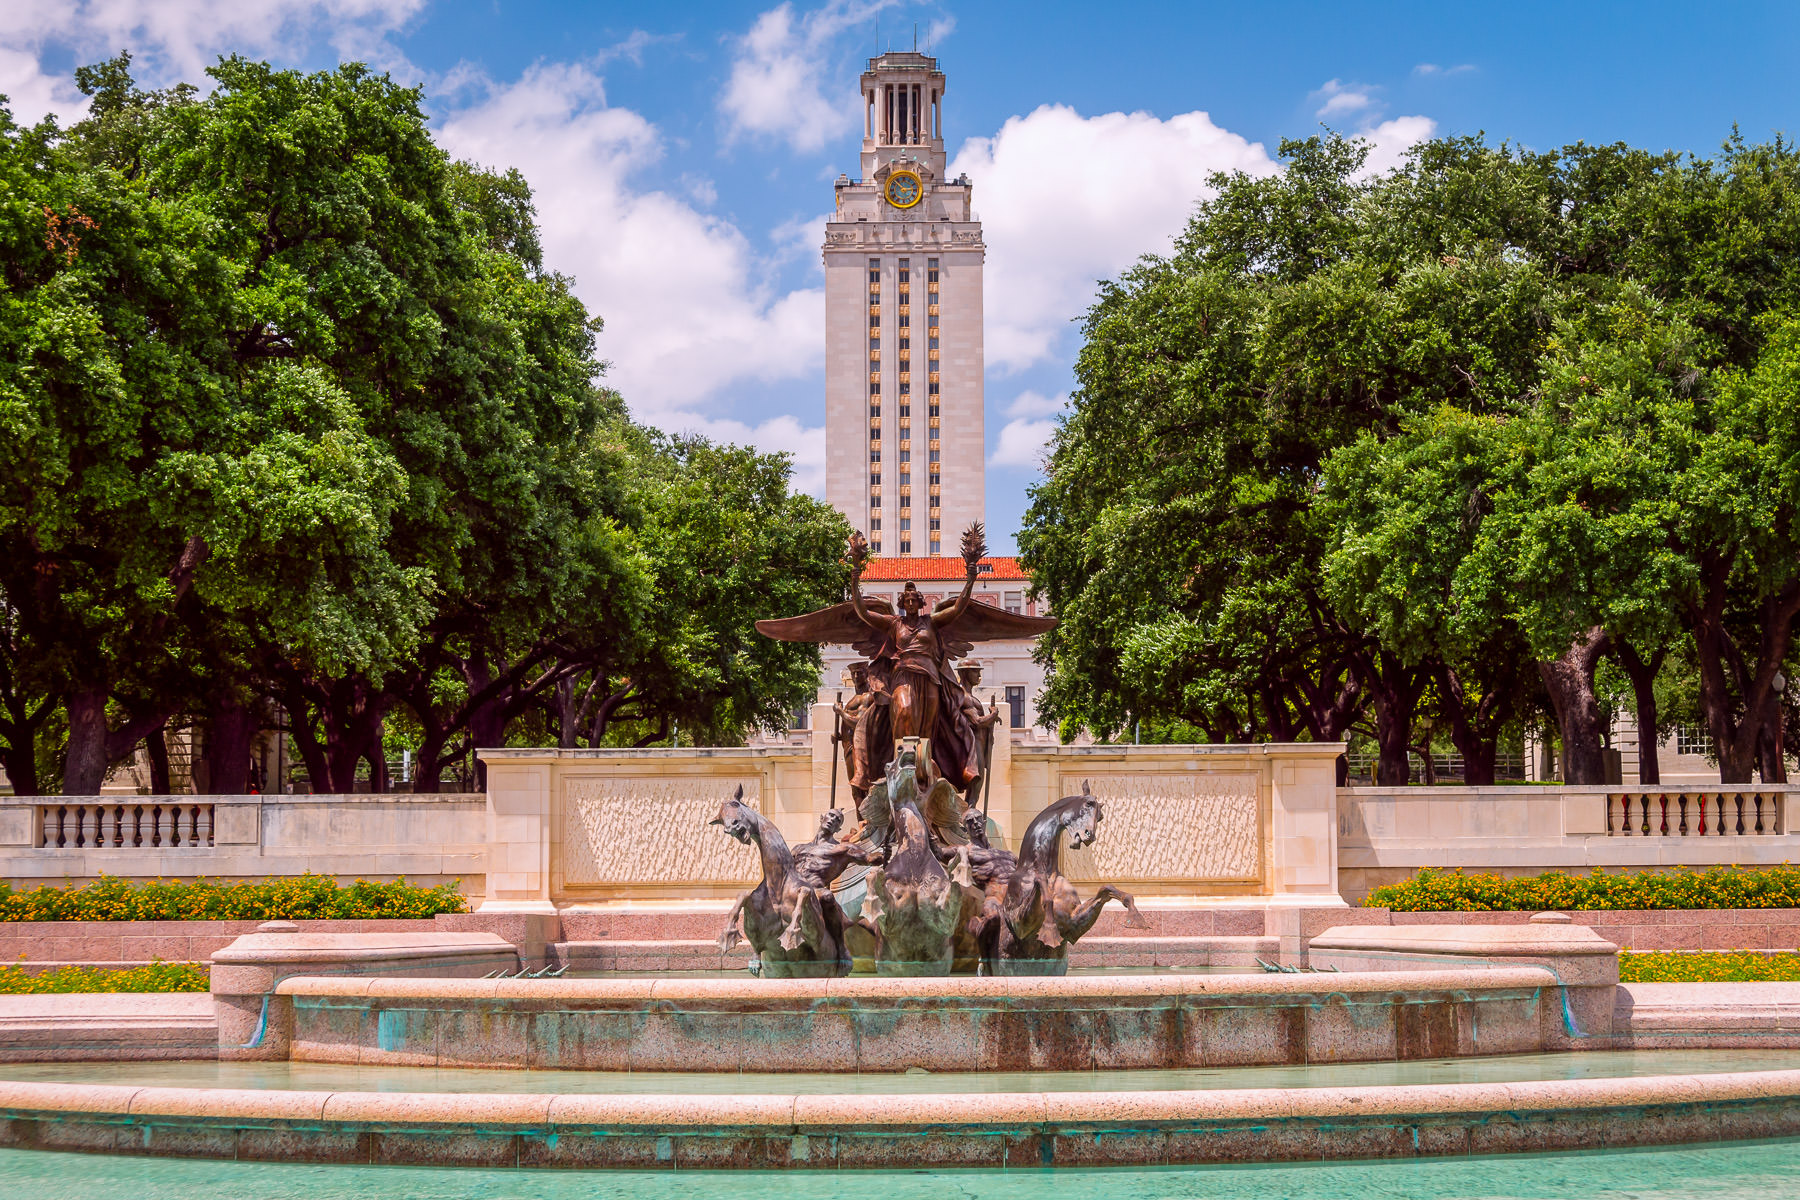 The Littlefield Fountain—a memorial to University of Texas students and alumni who died in World War I sculpted by Pompeo Coppini—is overshadowed by the University's Main Building in Austin.